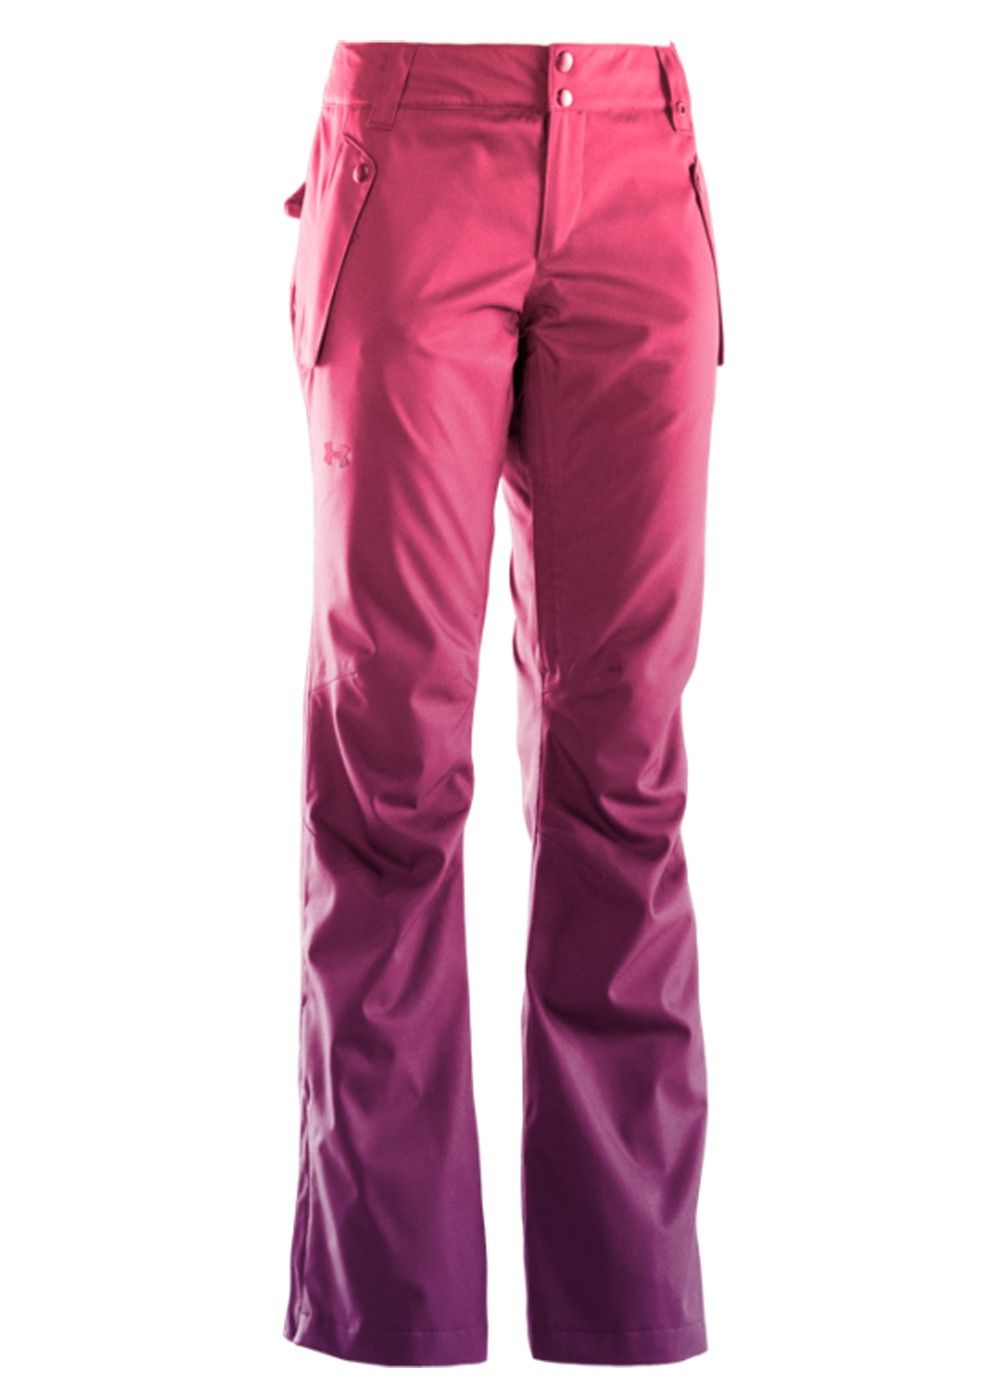 2019 year style- Snow womens pants for skiing and snowboarding